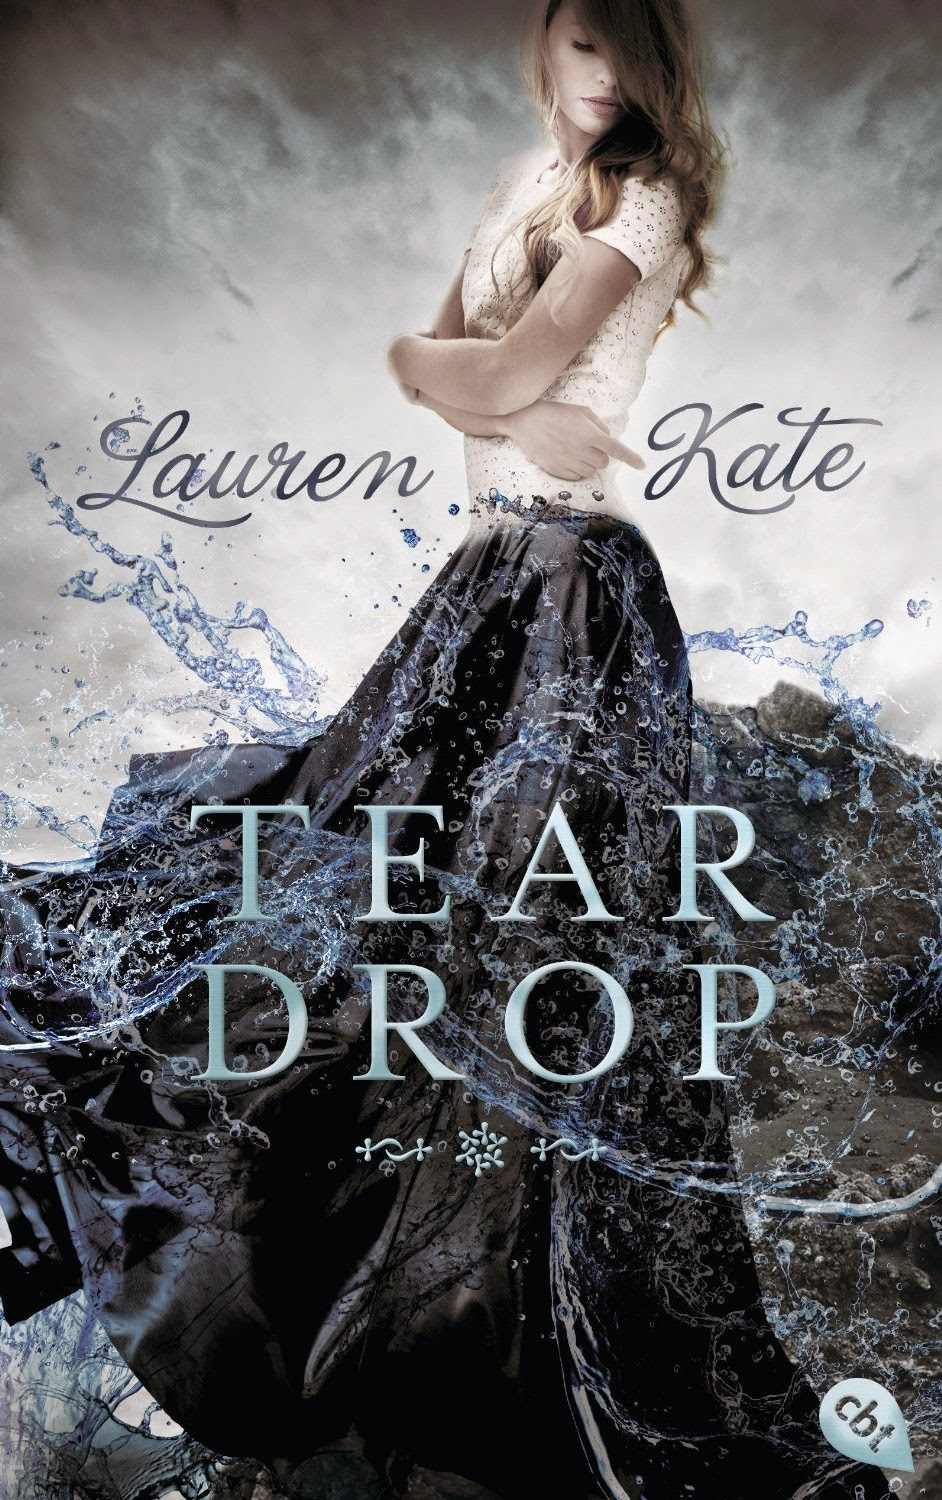 http://www.amazon.de/Teardrop-Band-1-Lauren-Kate/dp/357016277X/ref=sr_1_1?s=books&ie=UTF8&qid=1405021966&sr=1-1&keywords=tear+drop